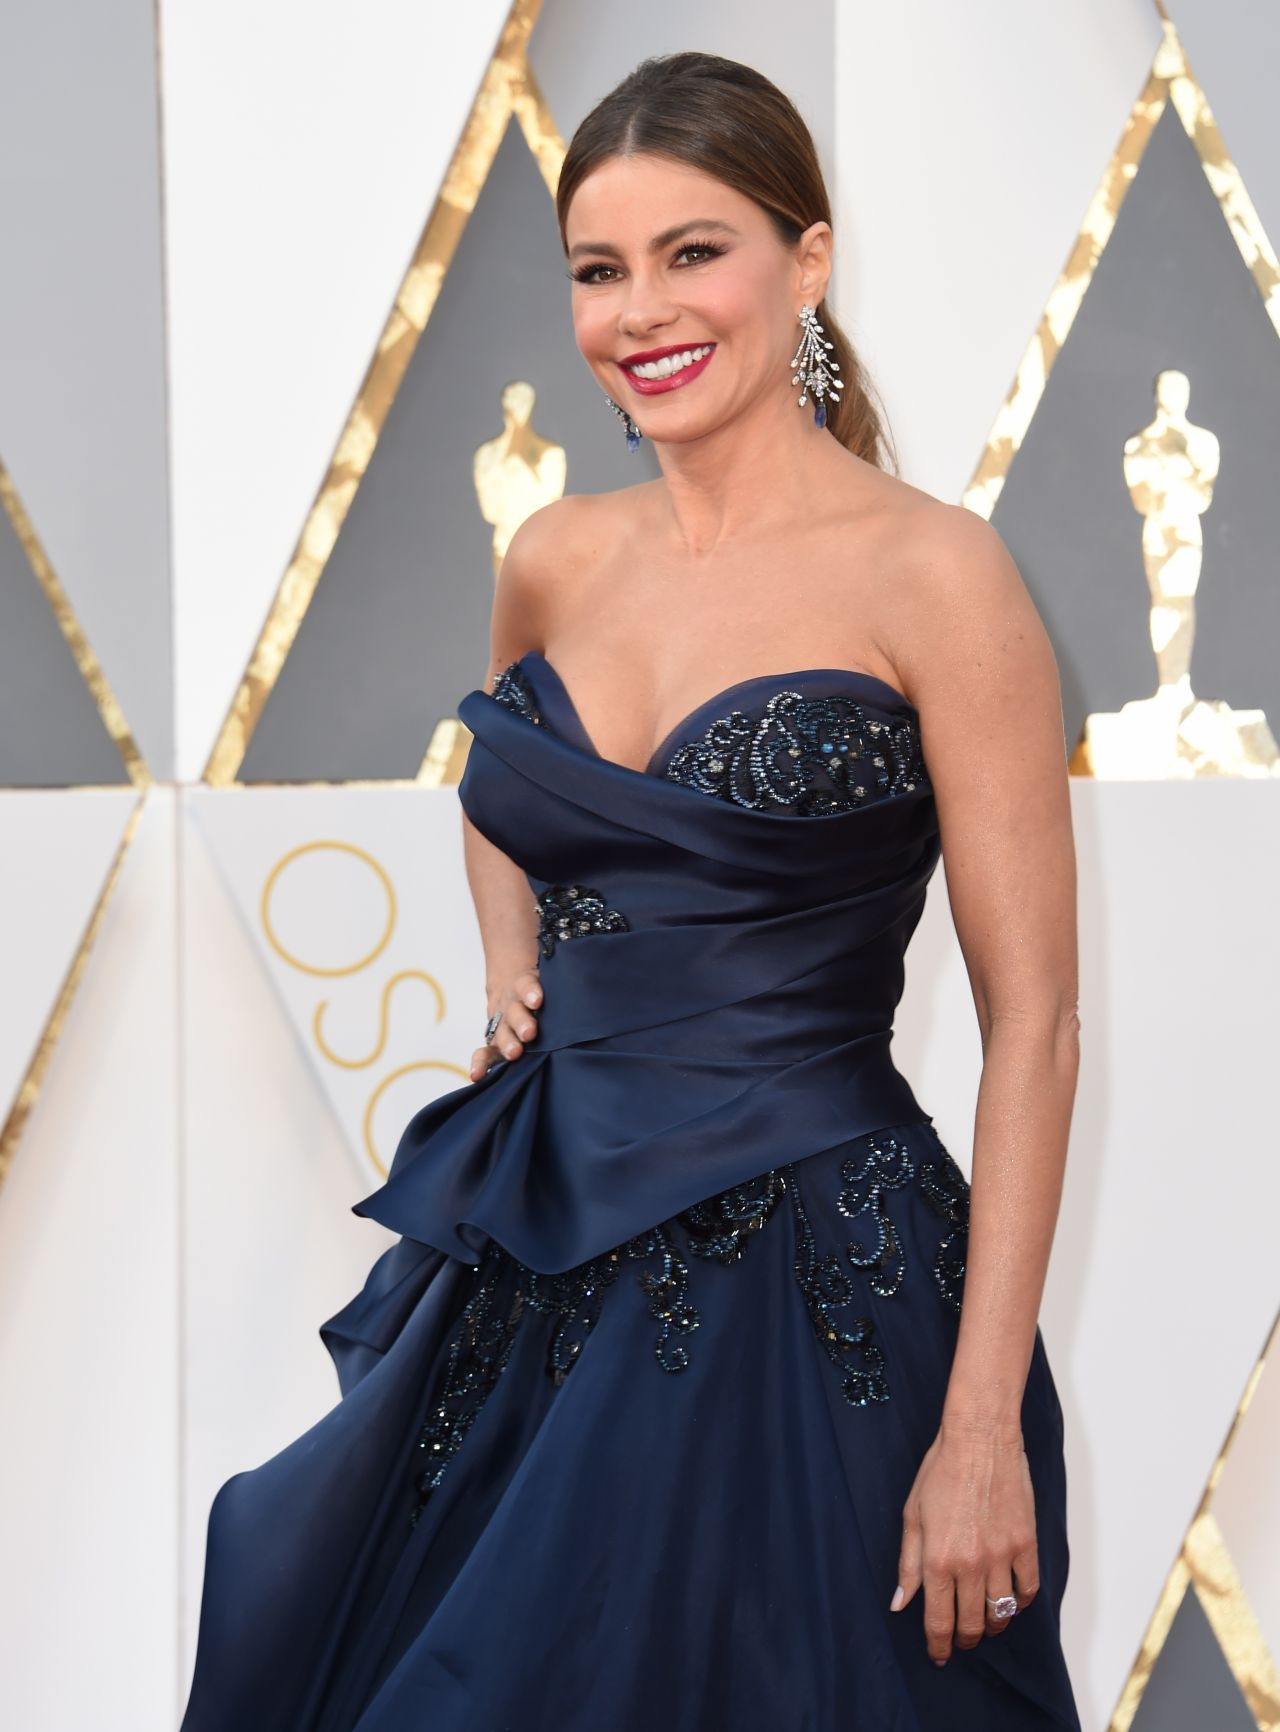 sofía-vergara-oscars-2016-in-hollywood-part-ii-9